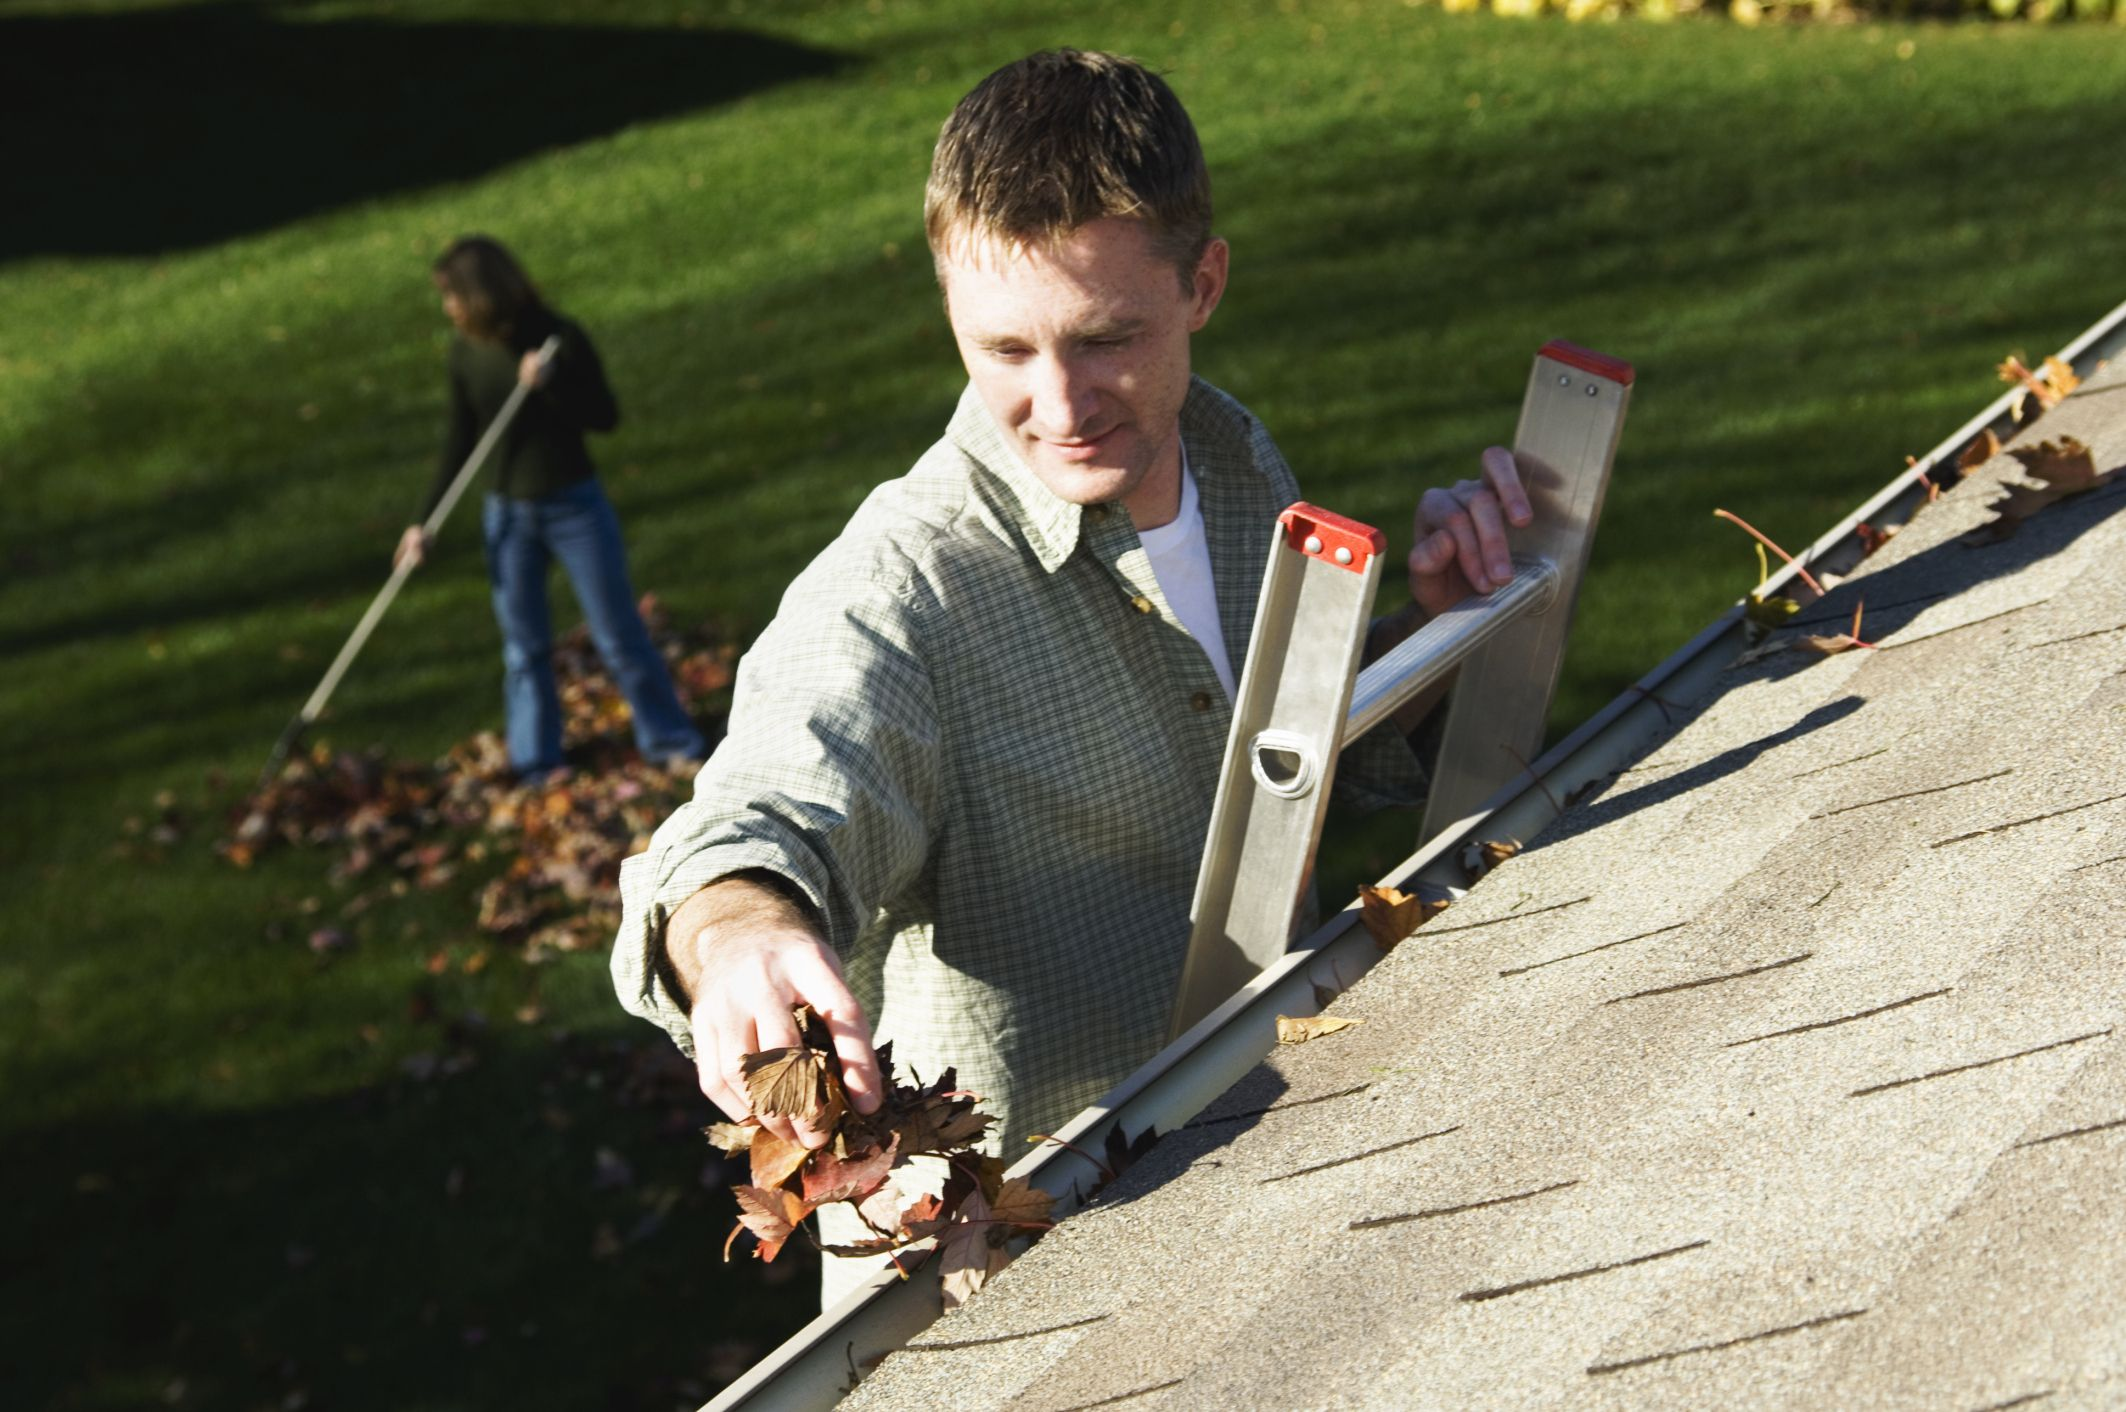 Gutter Cleaning Waco Tx Cleaning Gutters Gutter Cleaning Tool Gutters